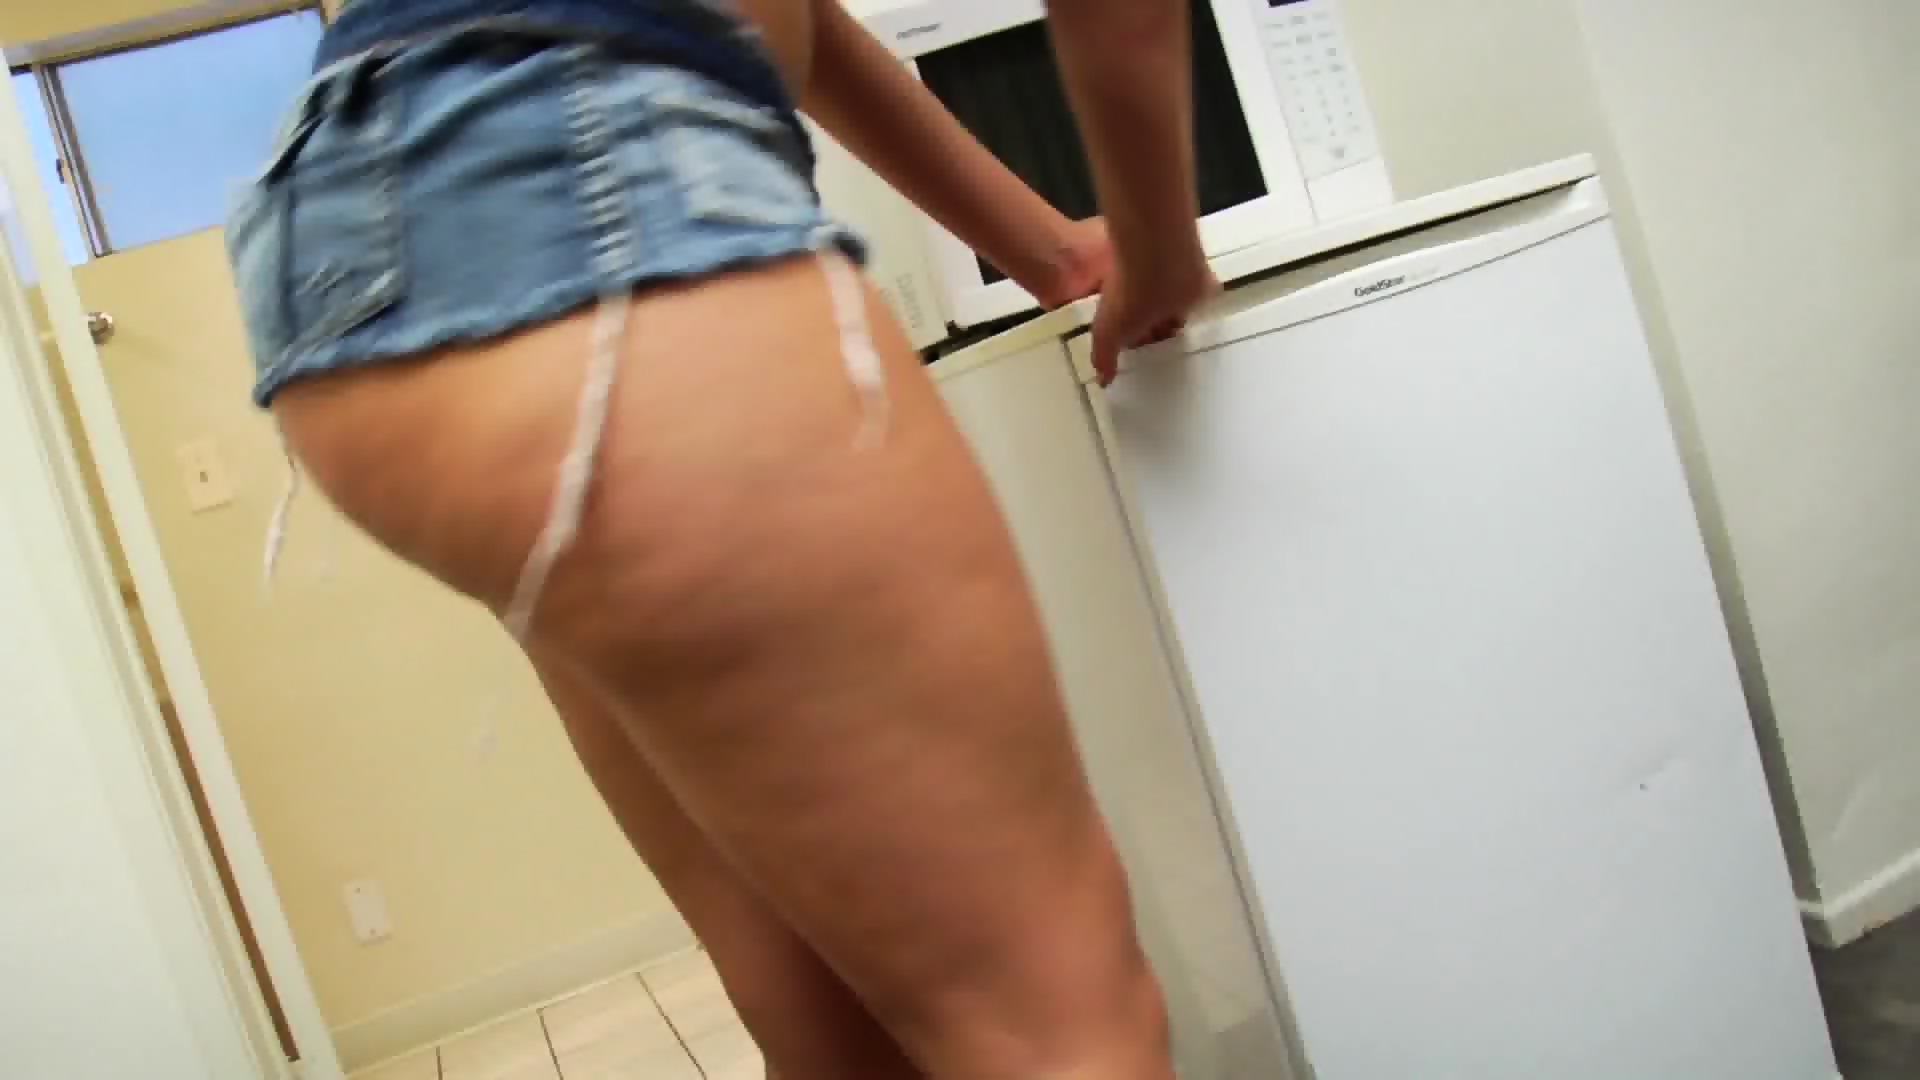 Hairy ass crack girl porn